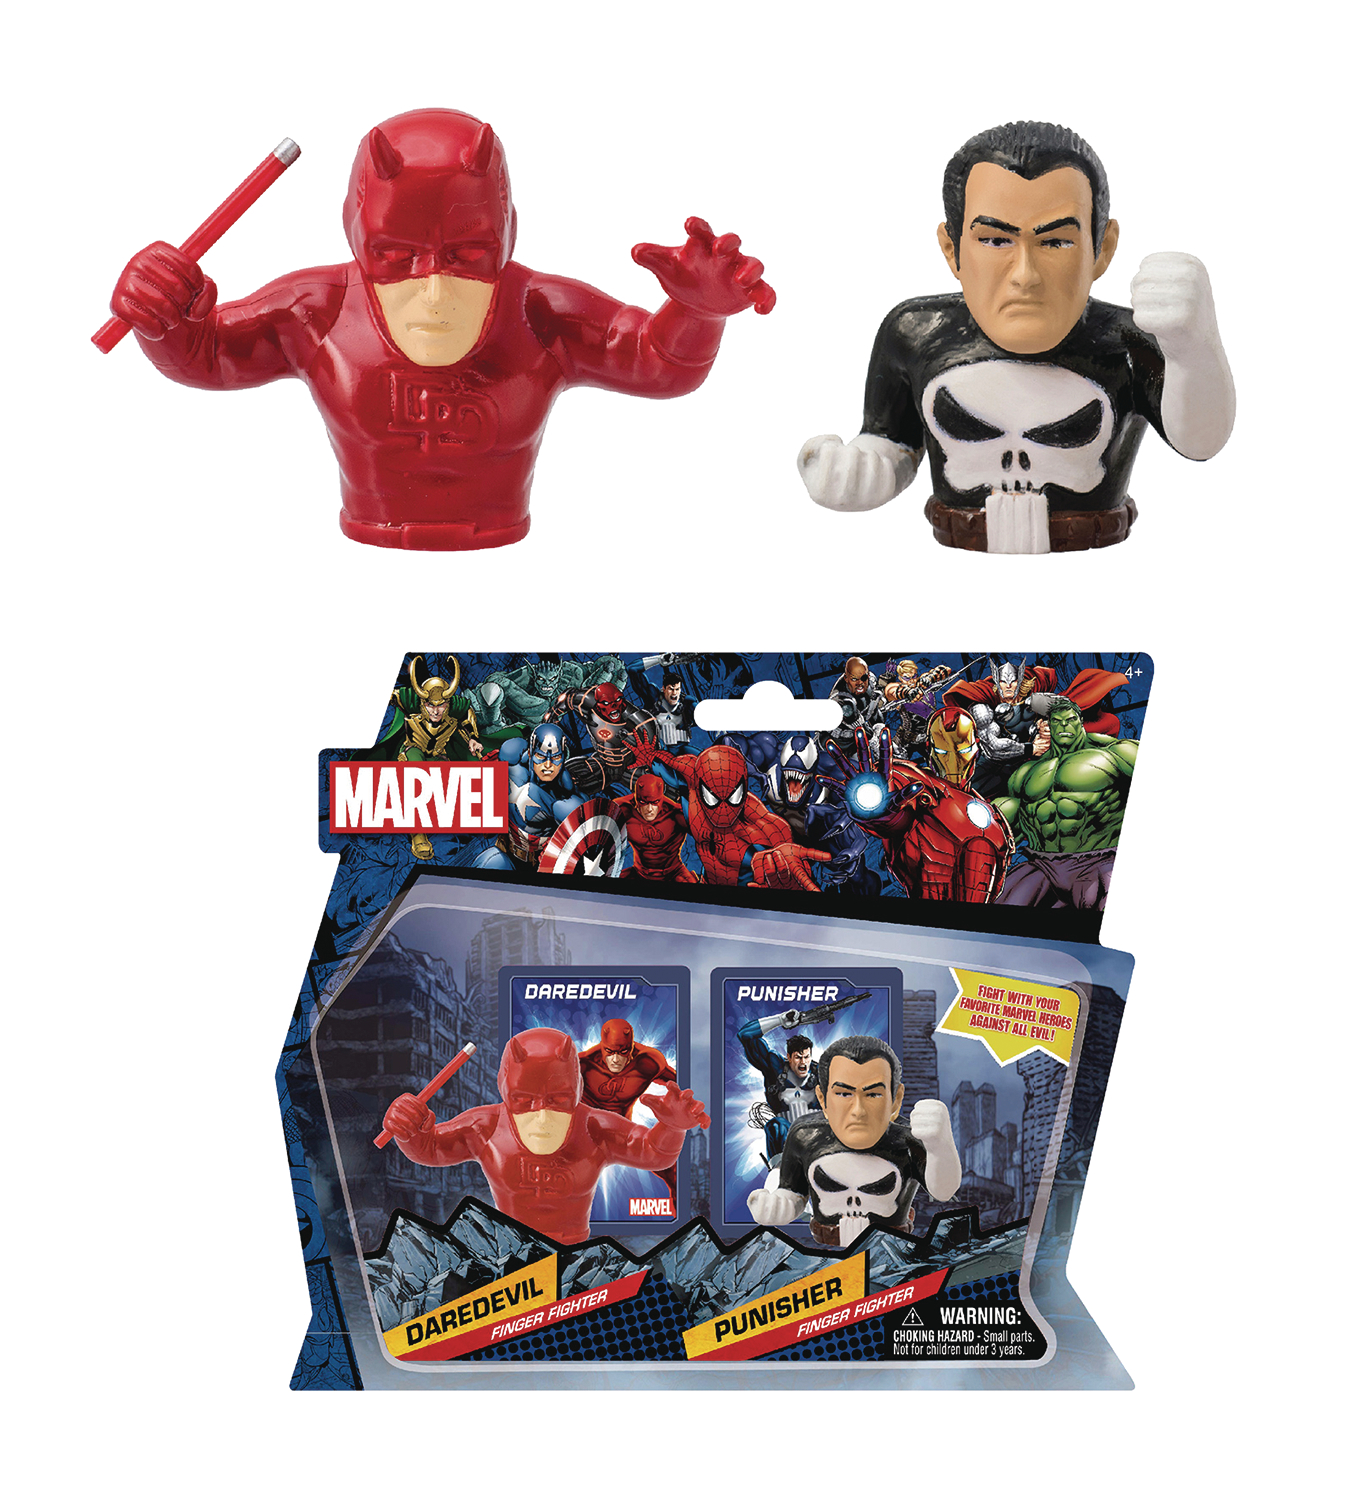 MARVEL HEROES DAREDEVIL VS PUNISHER FINGER FIGHTERS CS